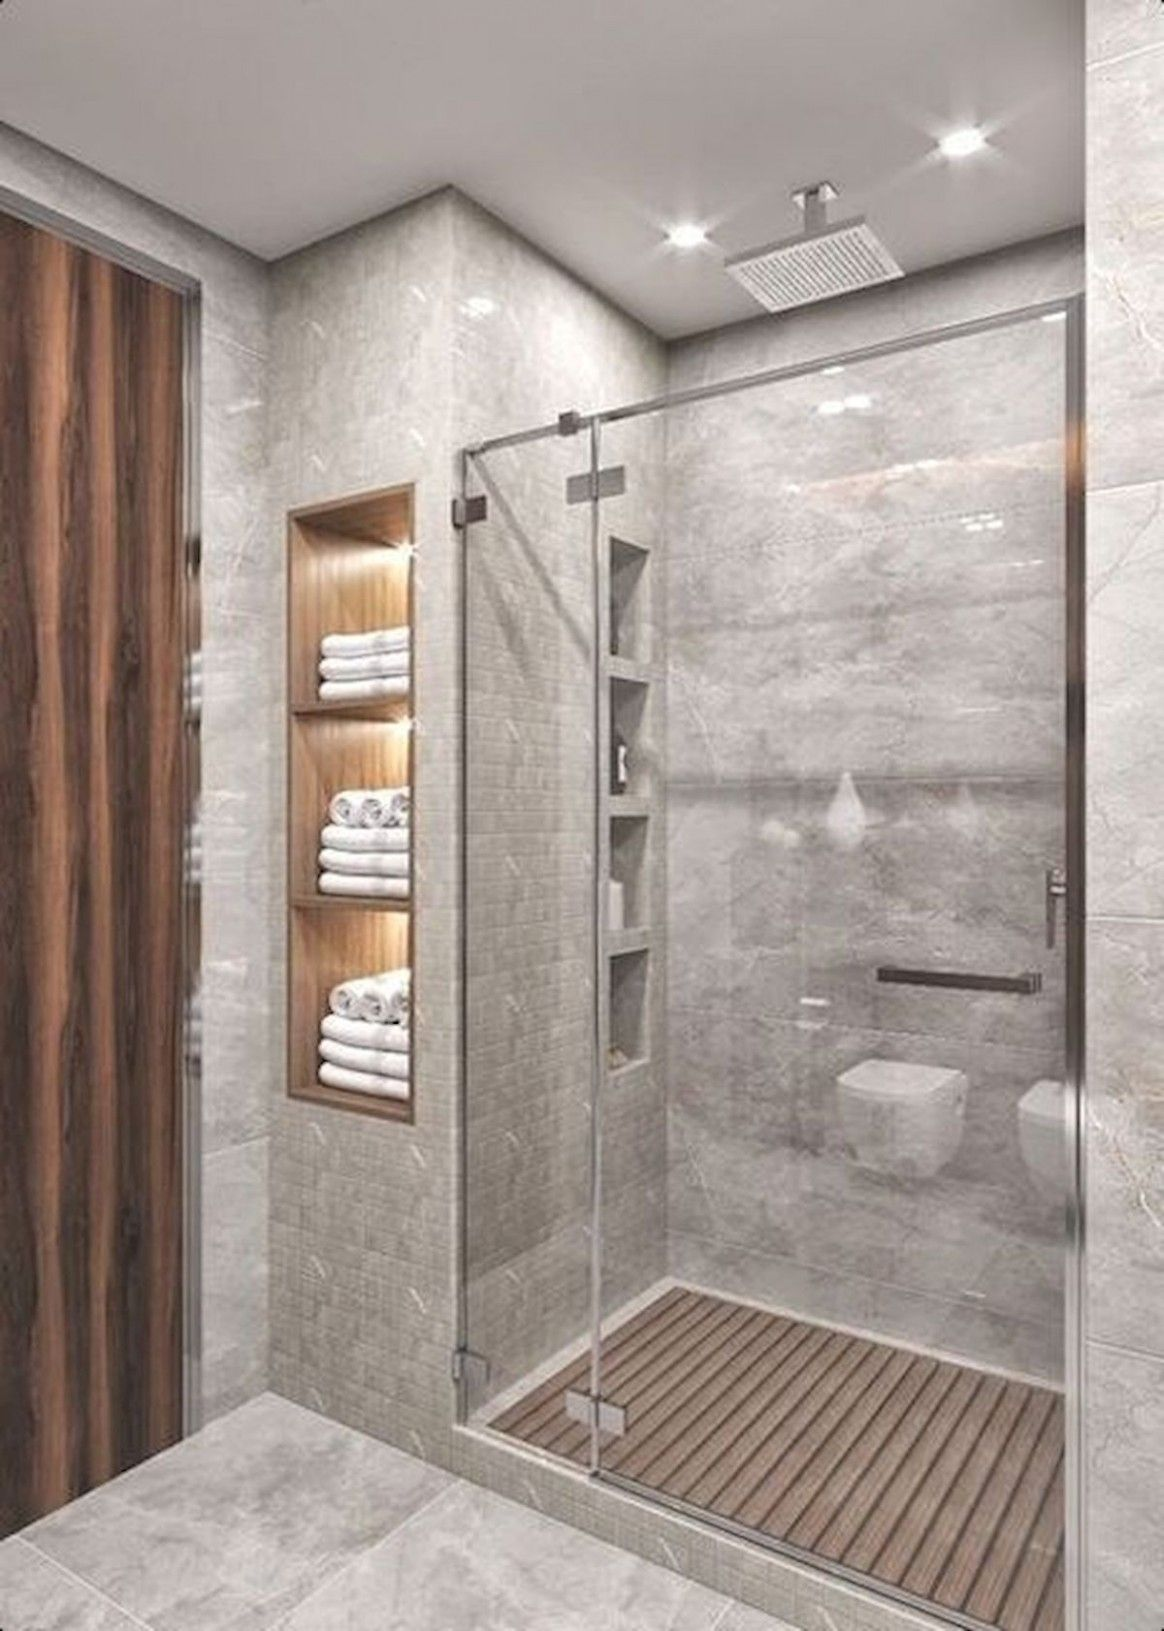 Modern Bathroom Pictures And Ideas In 2020 Small Bathroom Makeover Small Bathroom Remodel Modern Master Bathroom